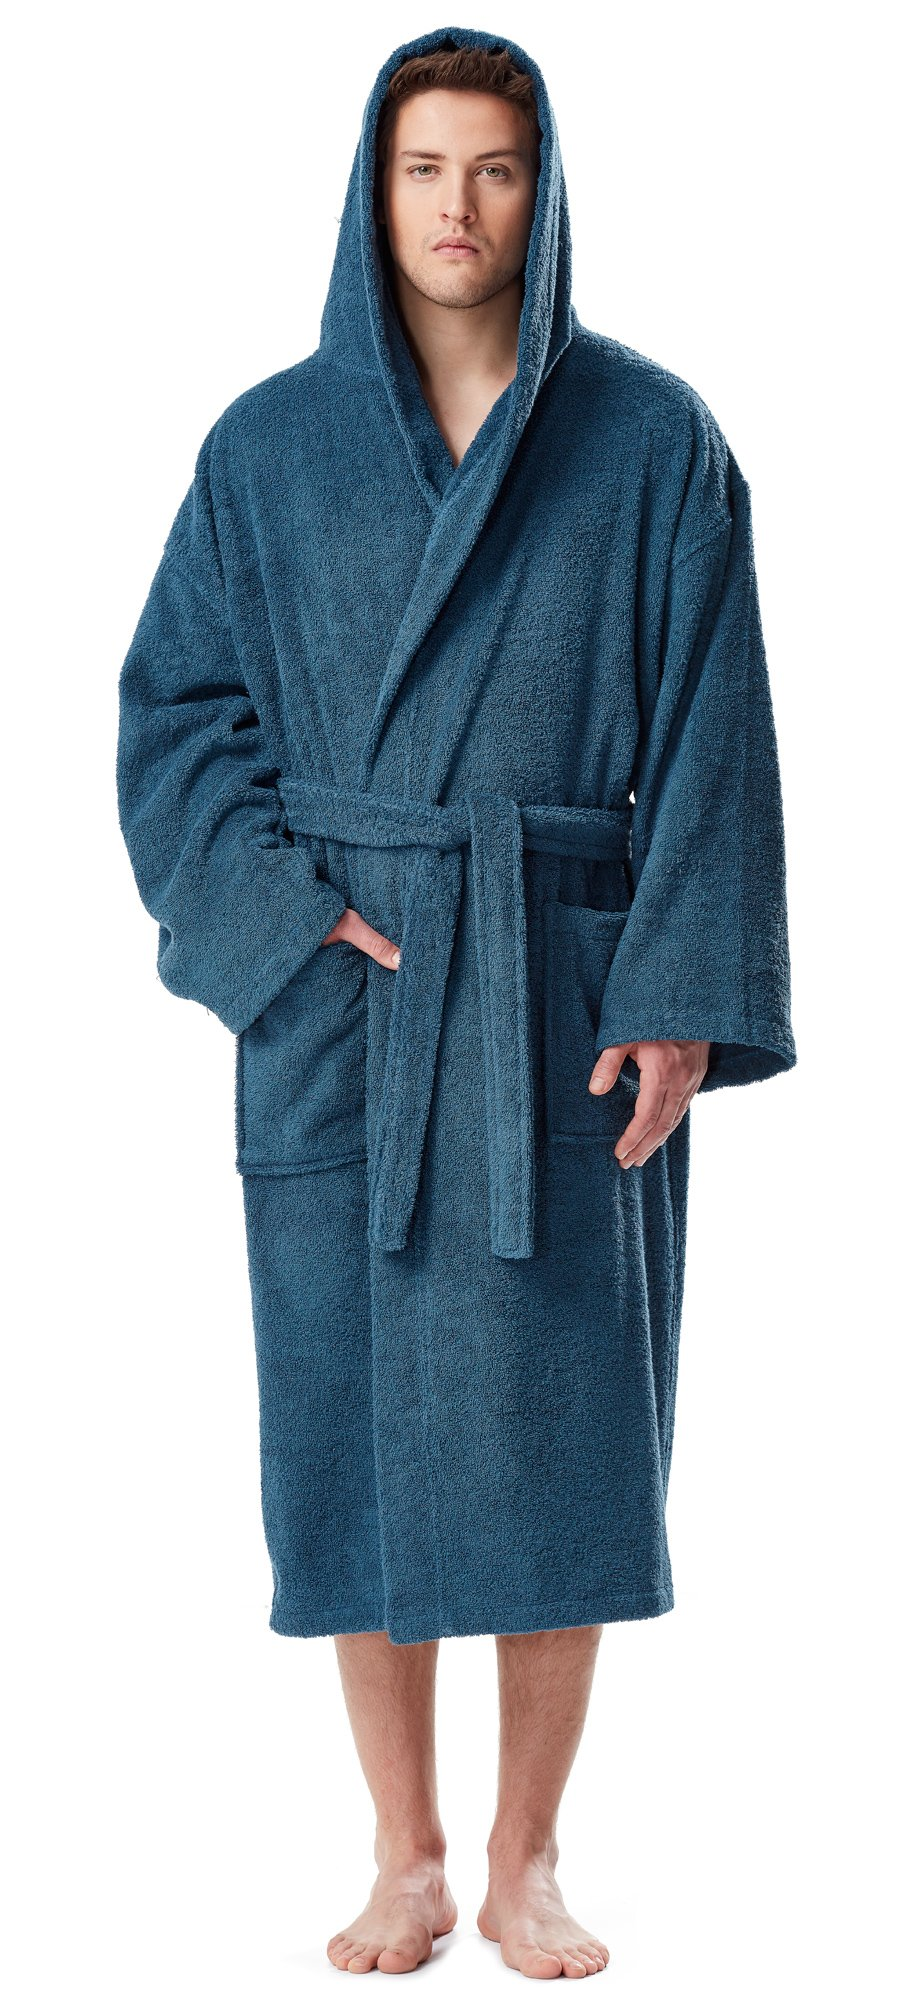 Arus Men's Classic Hooded Bathrobe Turkish Cotton Terry Cloth Robe (S/M,Ocean Blue)